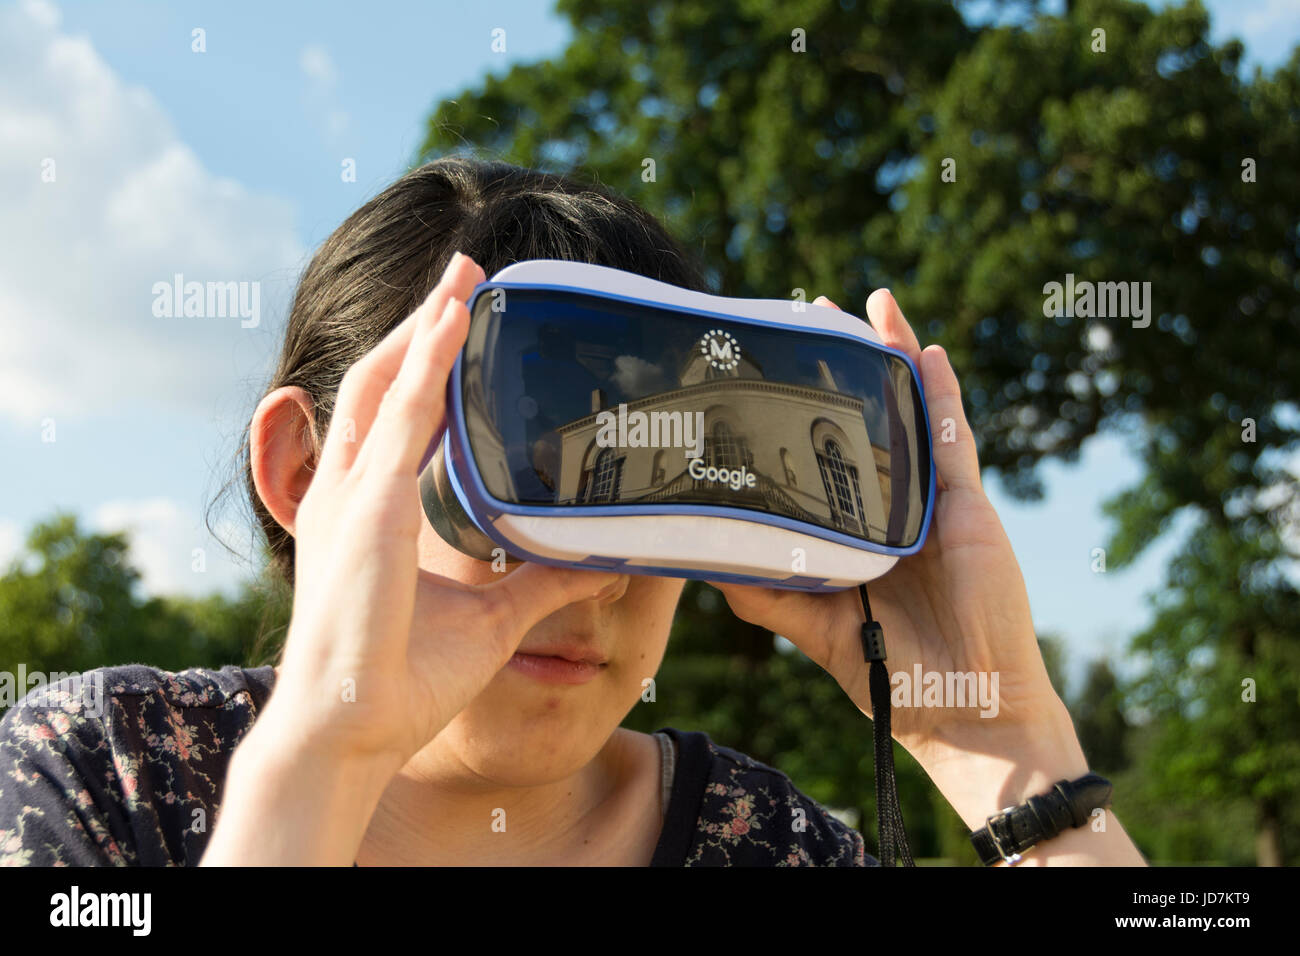 A young woman experimenting with a Google Expeditions headset - Stock Image